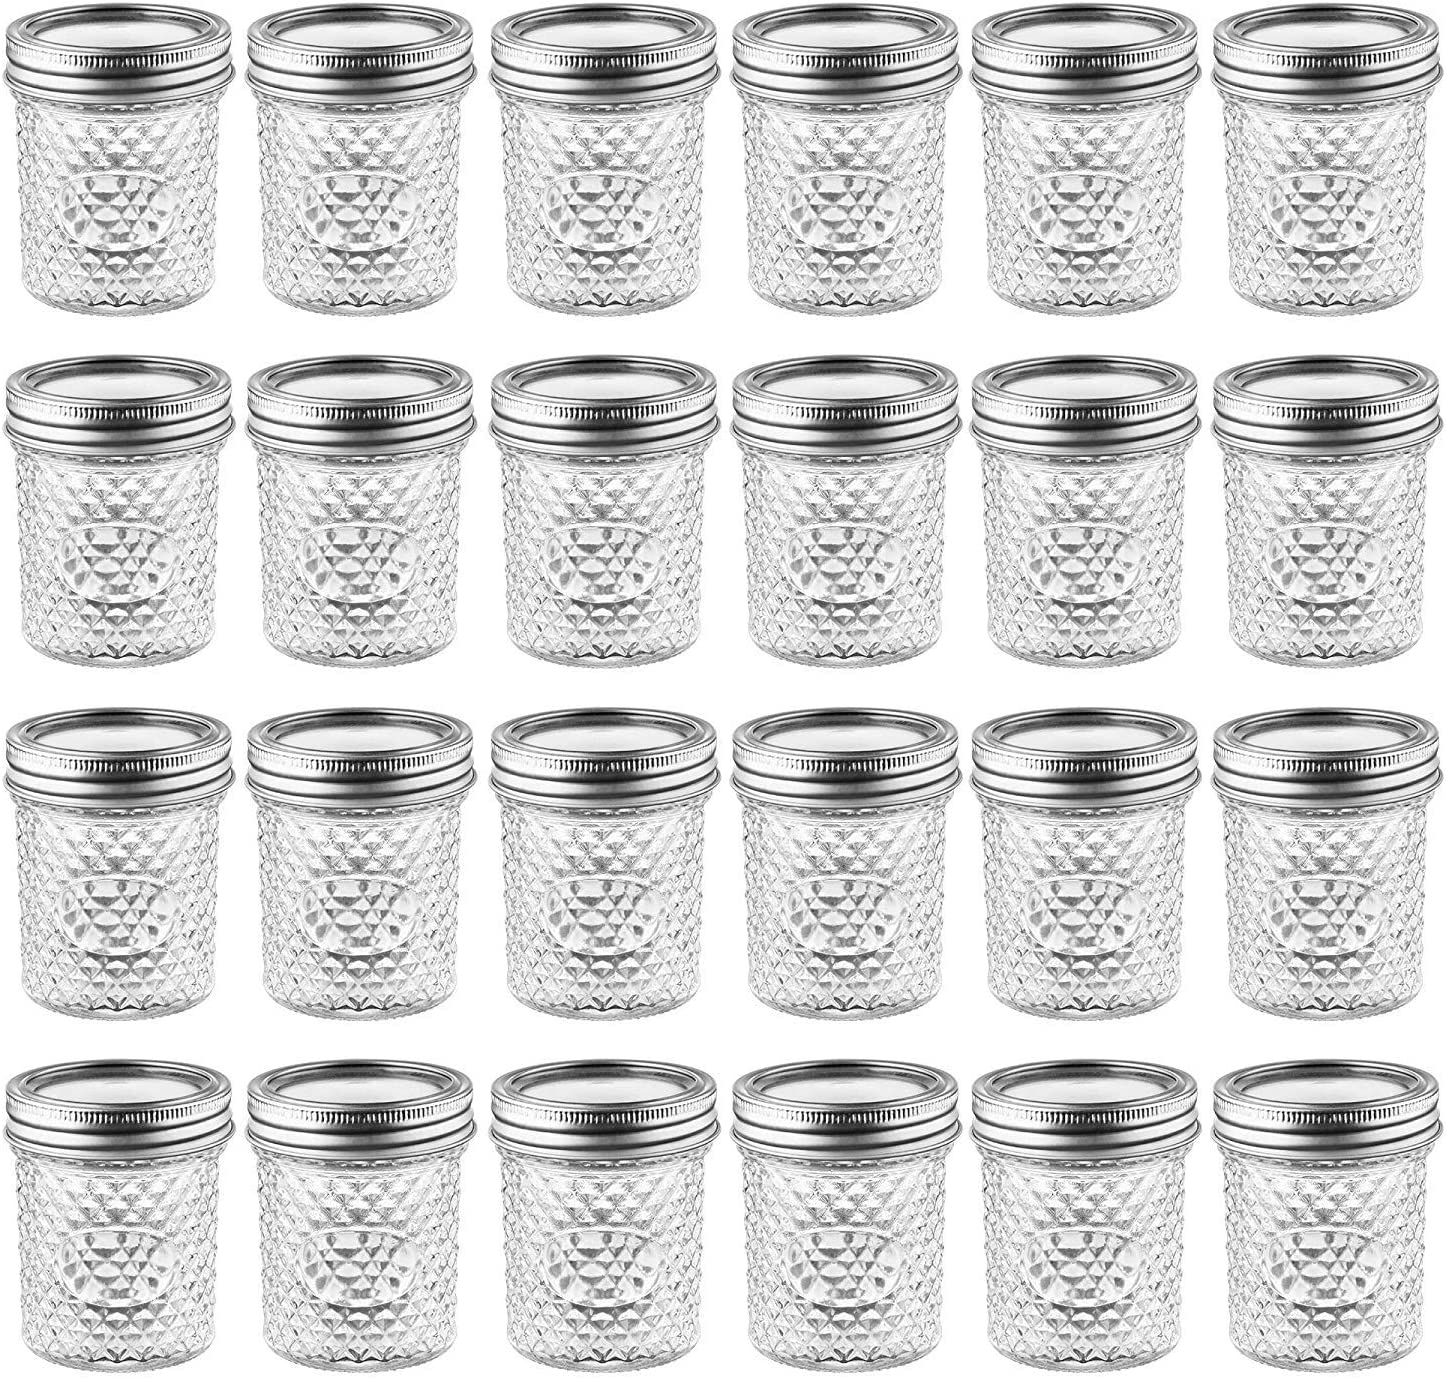 Mason Jars with Glass Lids 6 oz - Nellam Small Canning Jelly Jar Wide Mouth in Quilted Crystal for Airtight Kitchen Storage, Baby Food, Party Favors - Freezer & Microwave Safe - Set of 24, Silver